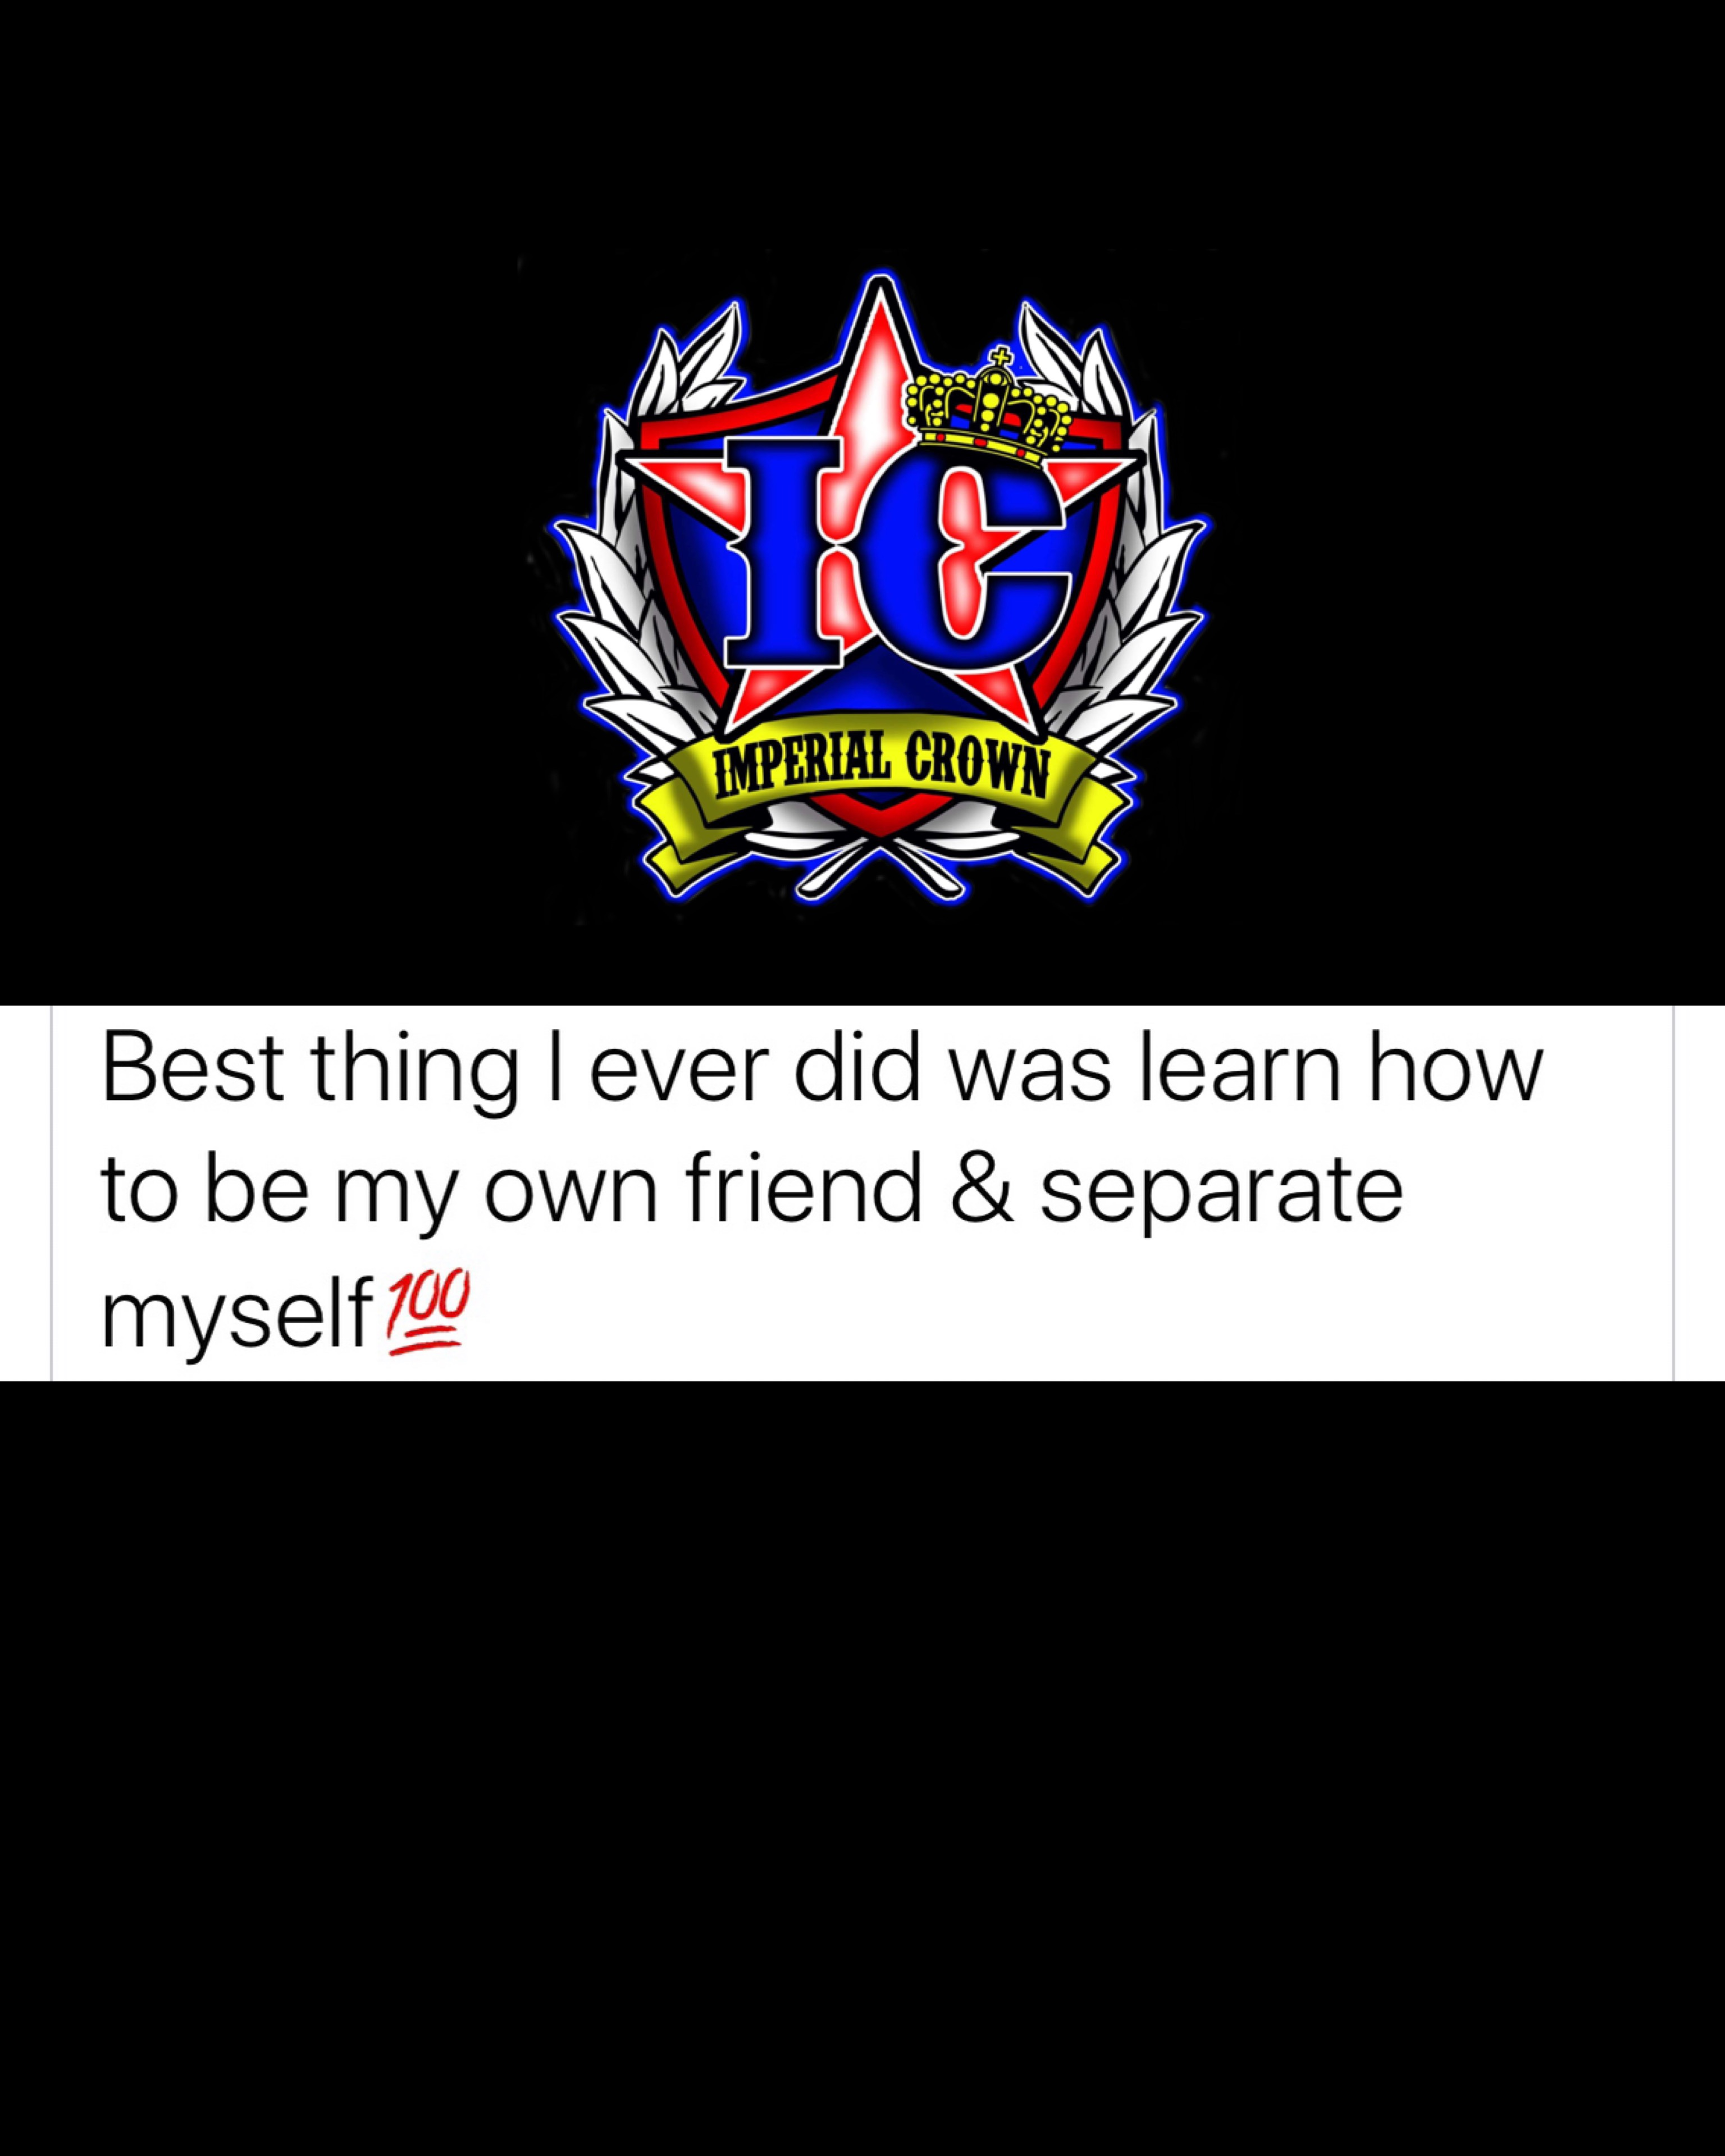 Best thing I ever did was learn how to be my friend and separate myself